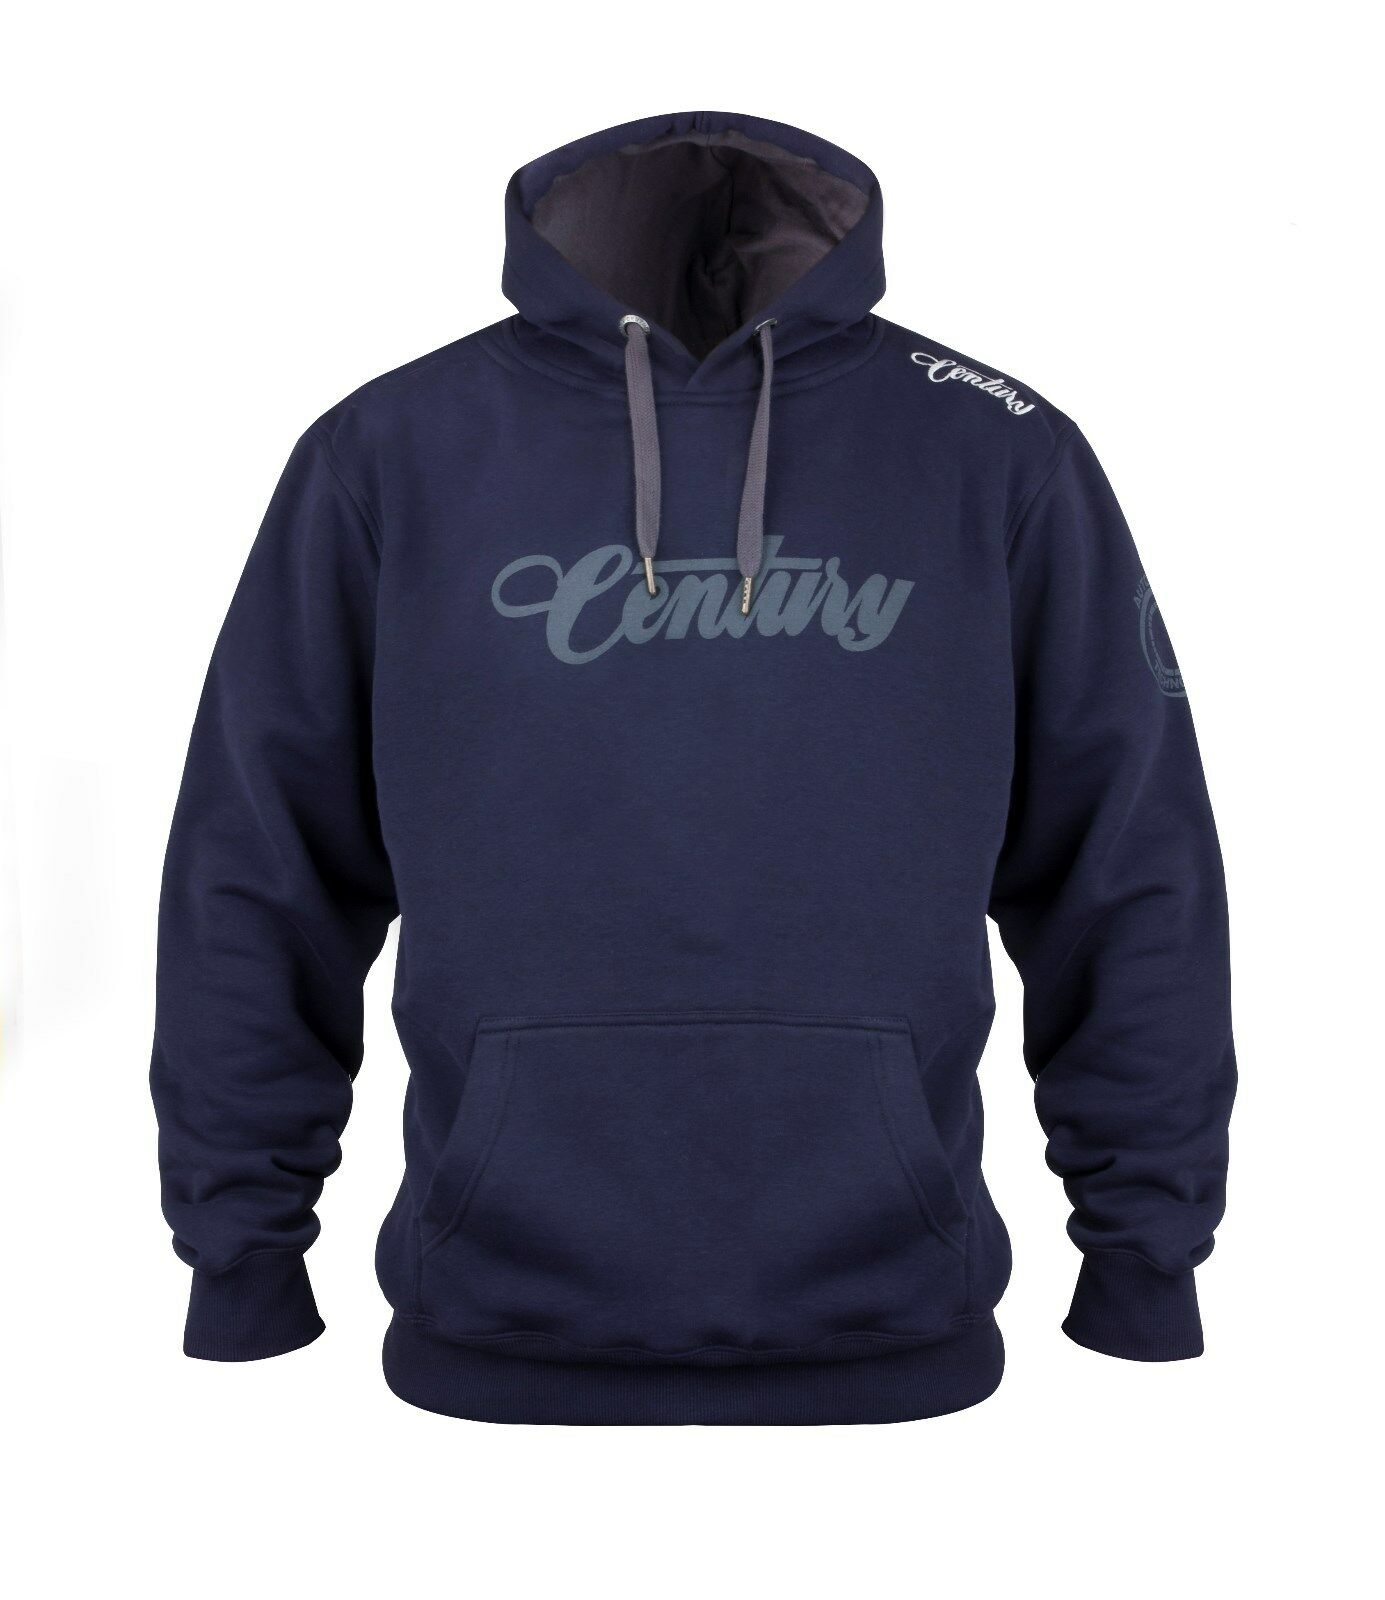 Century Carp  Sea Fishing Rods Navy bluee Hoody - NEW  limit buy